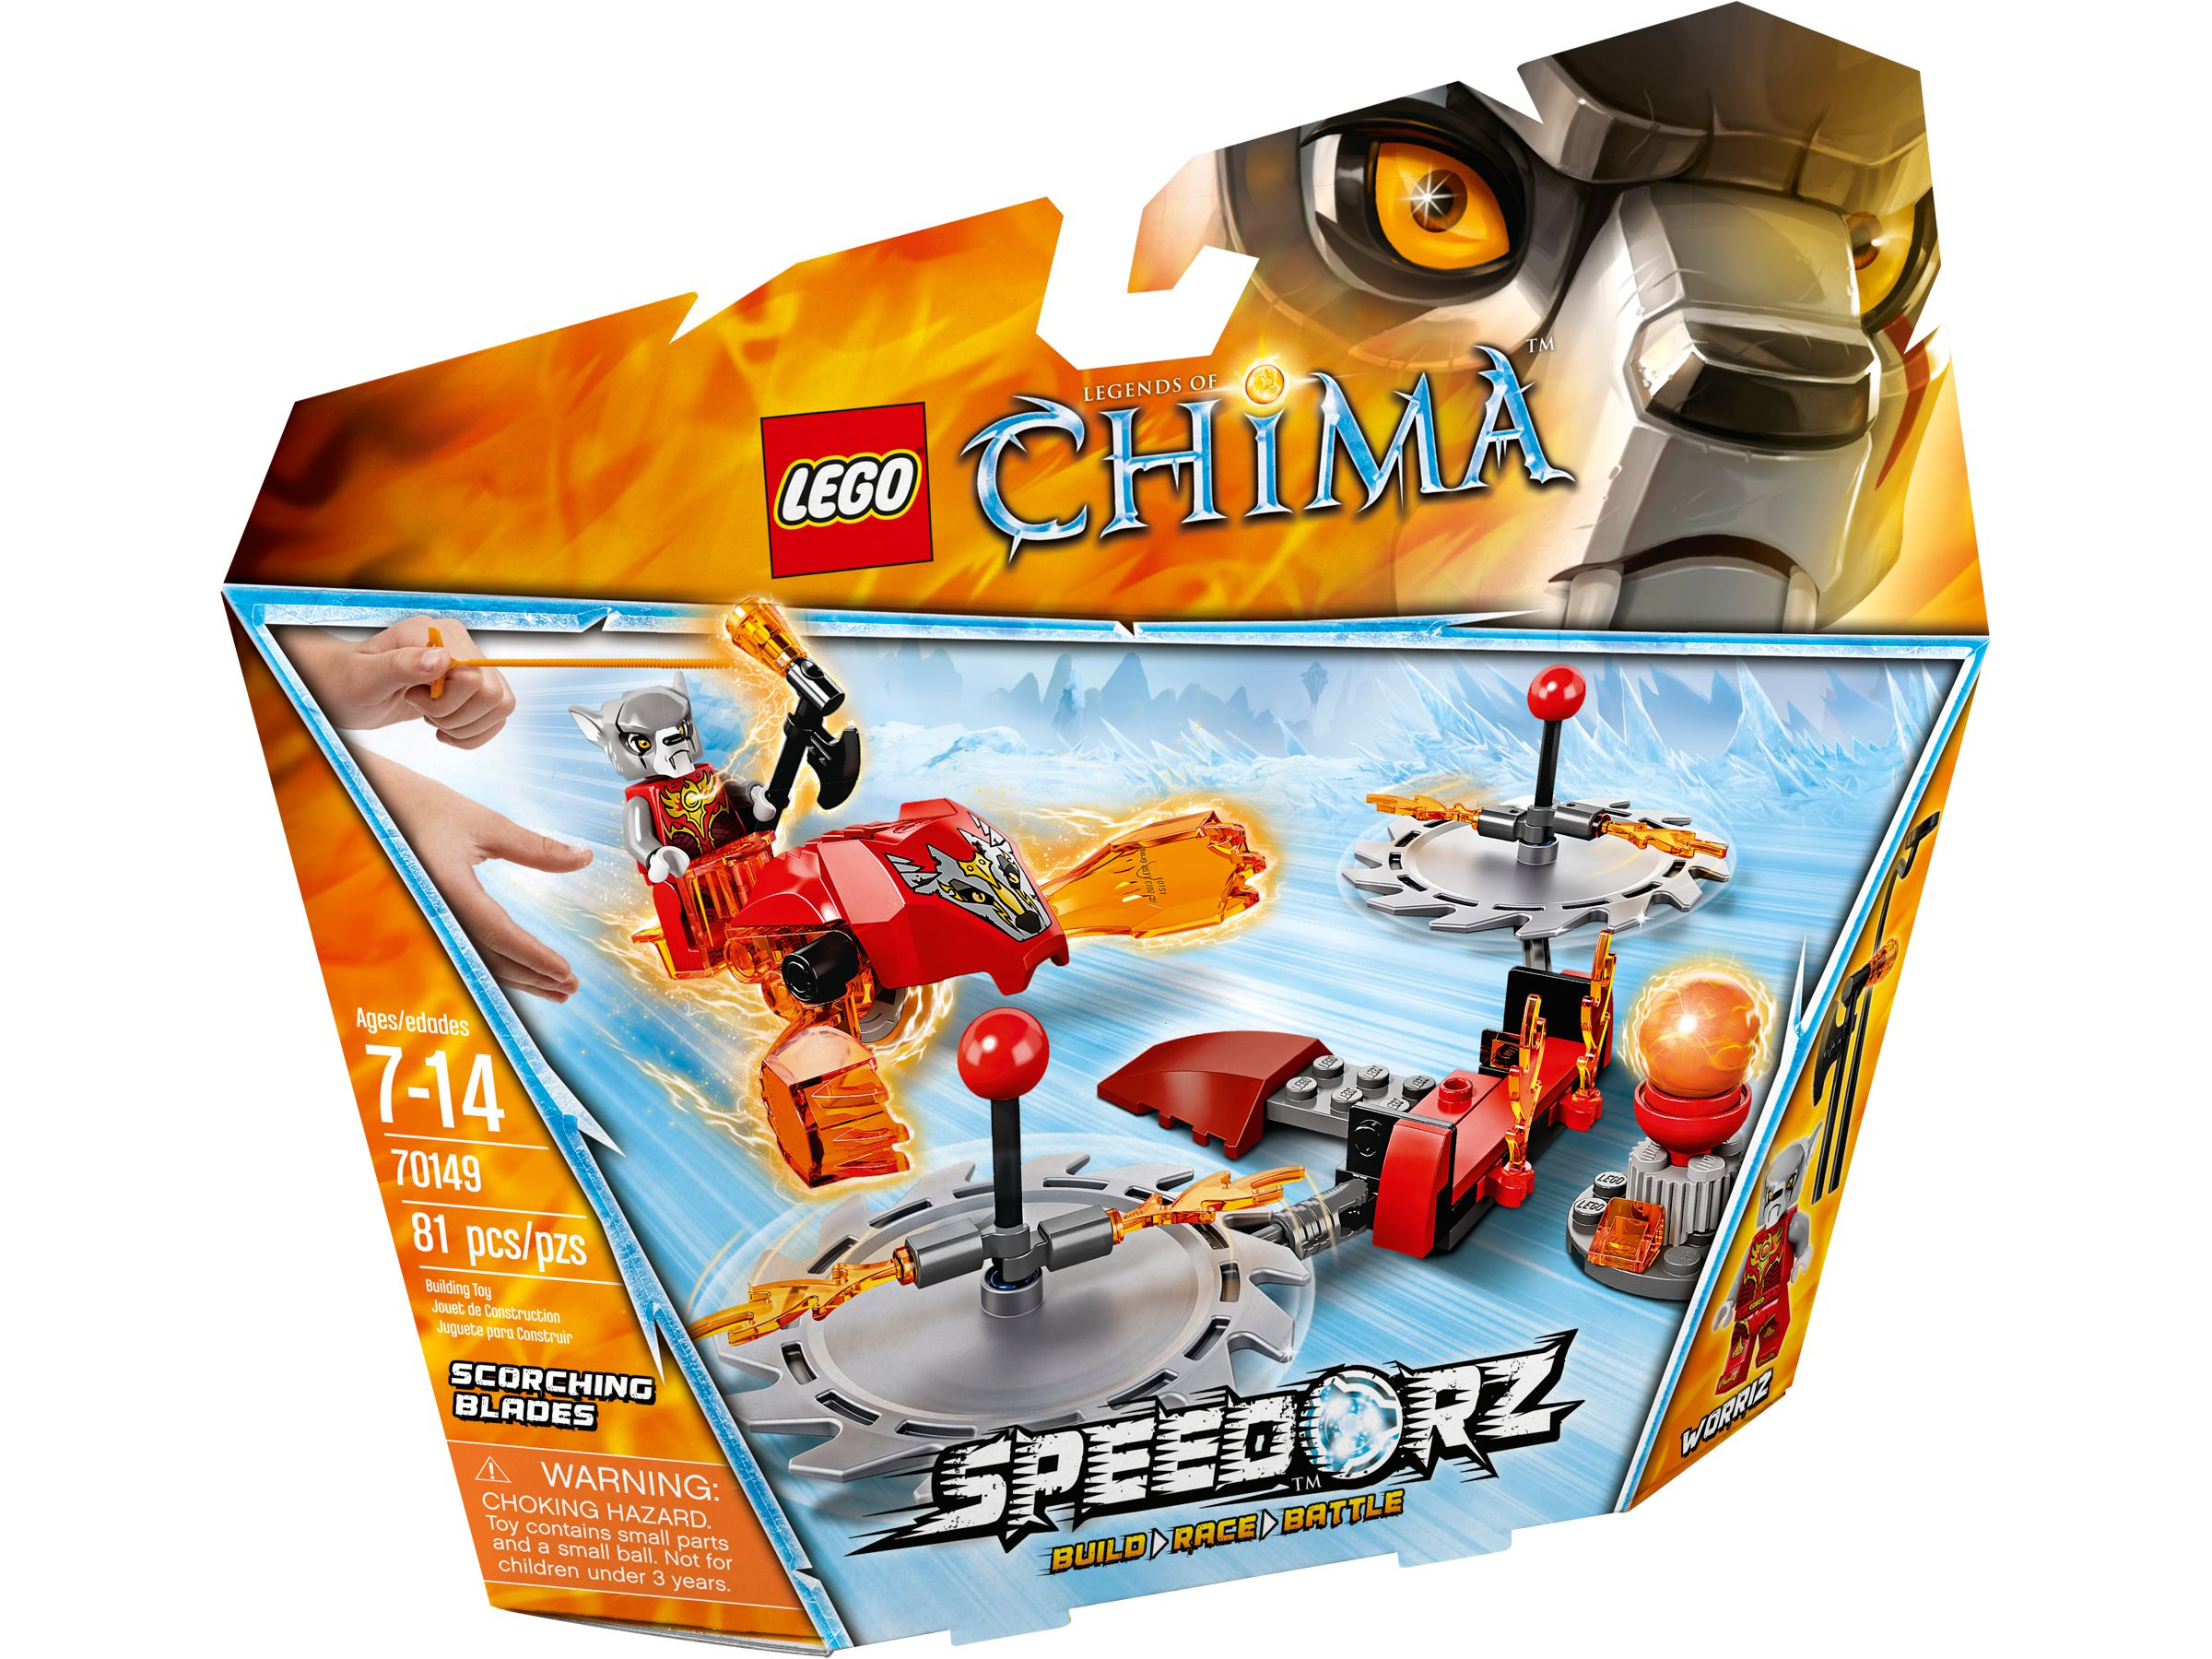 LEGO Legends Of Chima 70149 Feuer-Klingen LEGO_70149_alt1.jpg